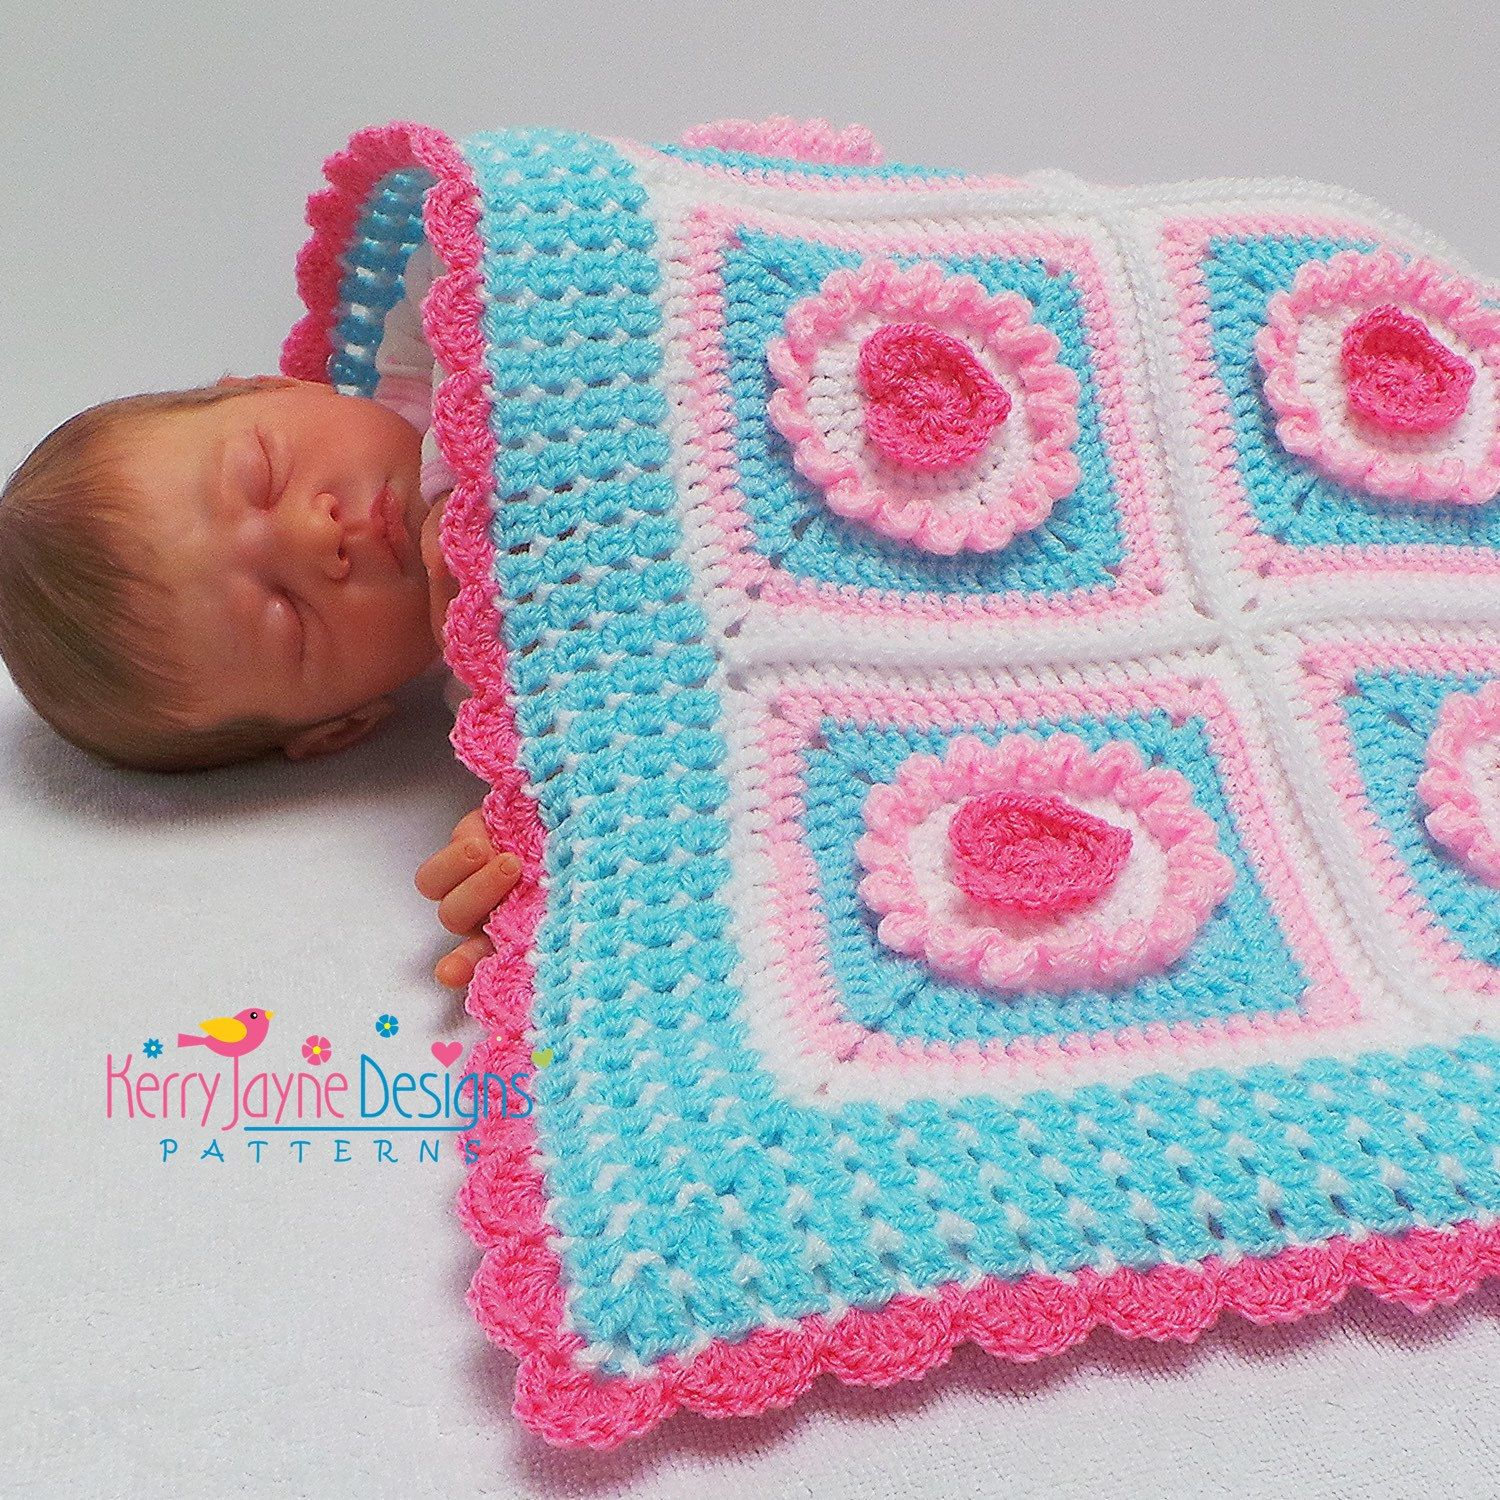 The cupcake heart blanket pattern is now available in uk terms cupcake heart blanket crochet pattern crochet baby blanket pattern crochet heart blanket crochet pattern instant pdf crochet pattern uk baby bankloansurffo Images